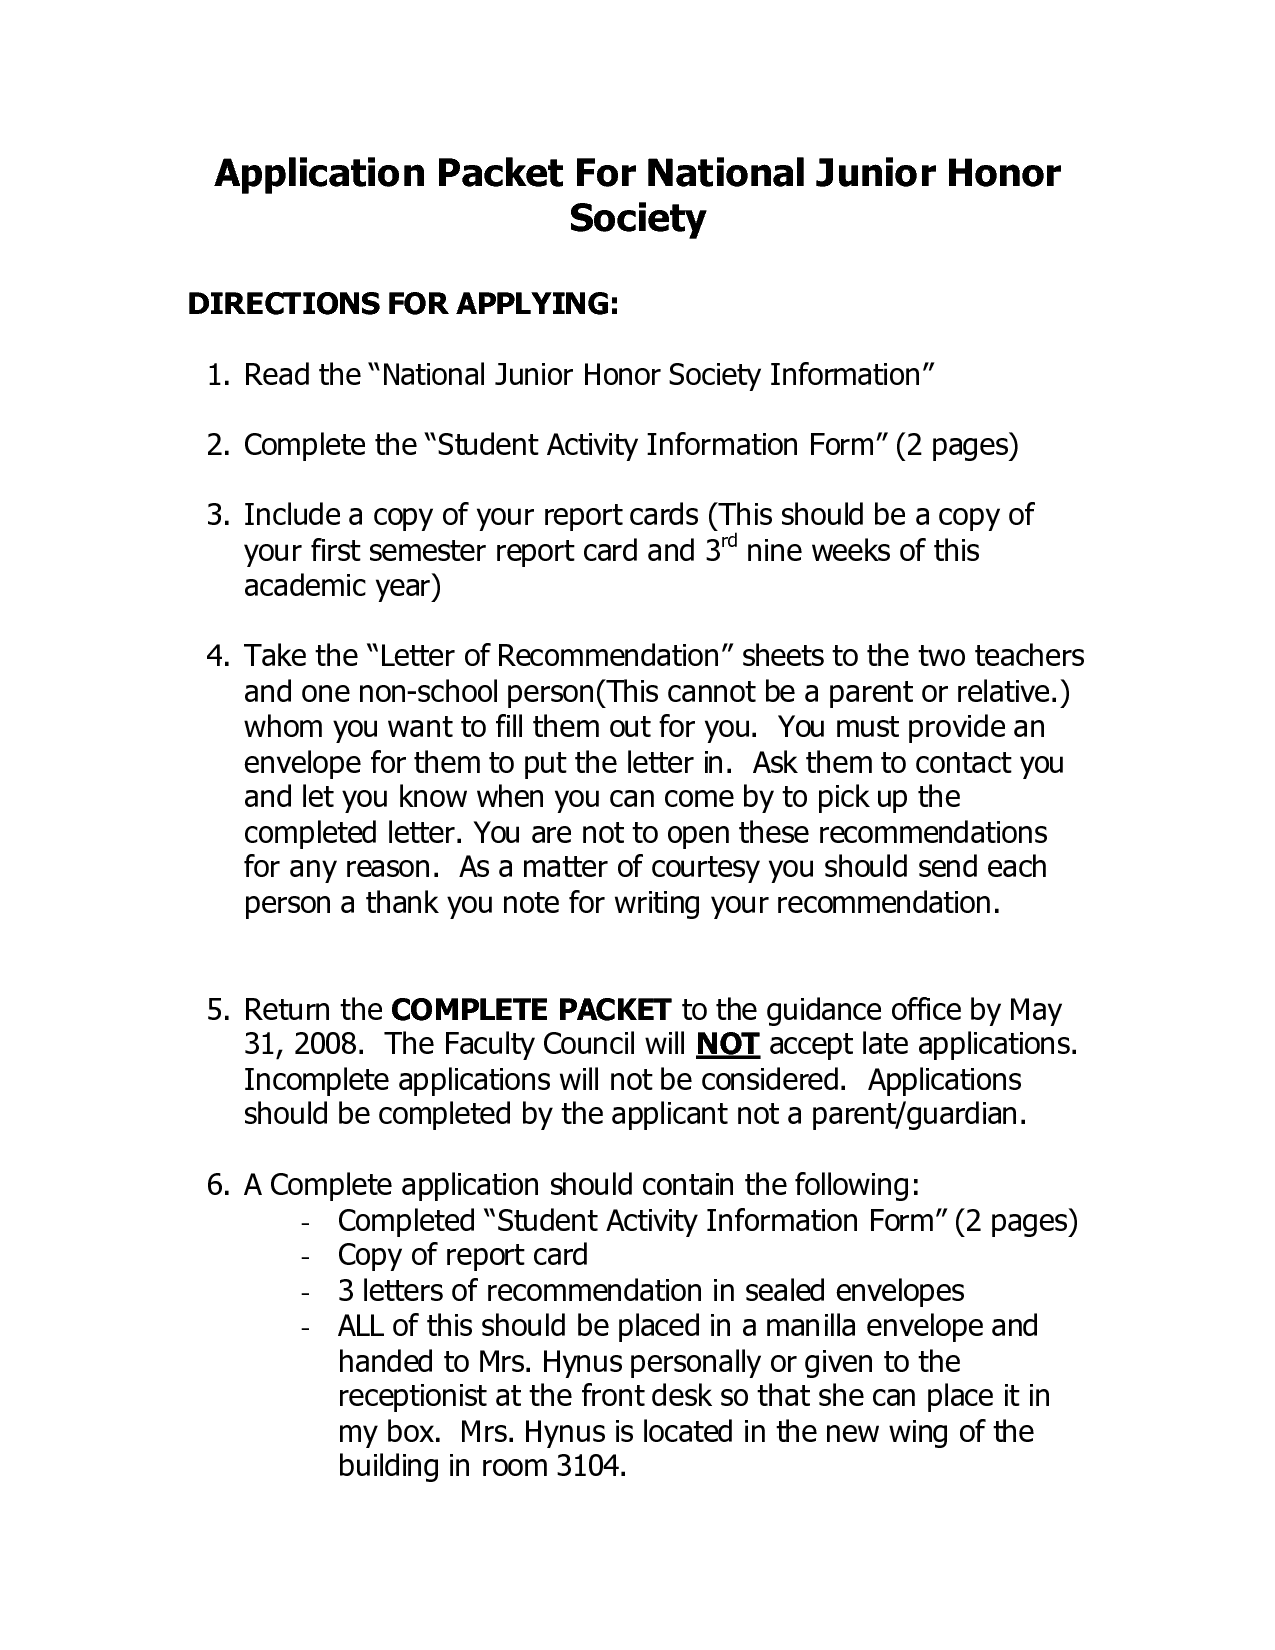 003 Application Essay National Junior Honor Society Conclusion Of To Example Unique Njhs Full